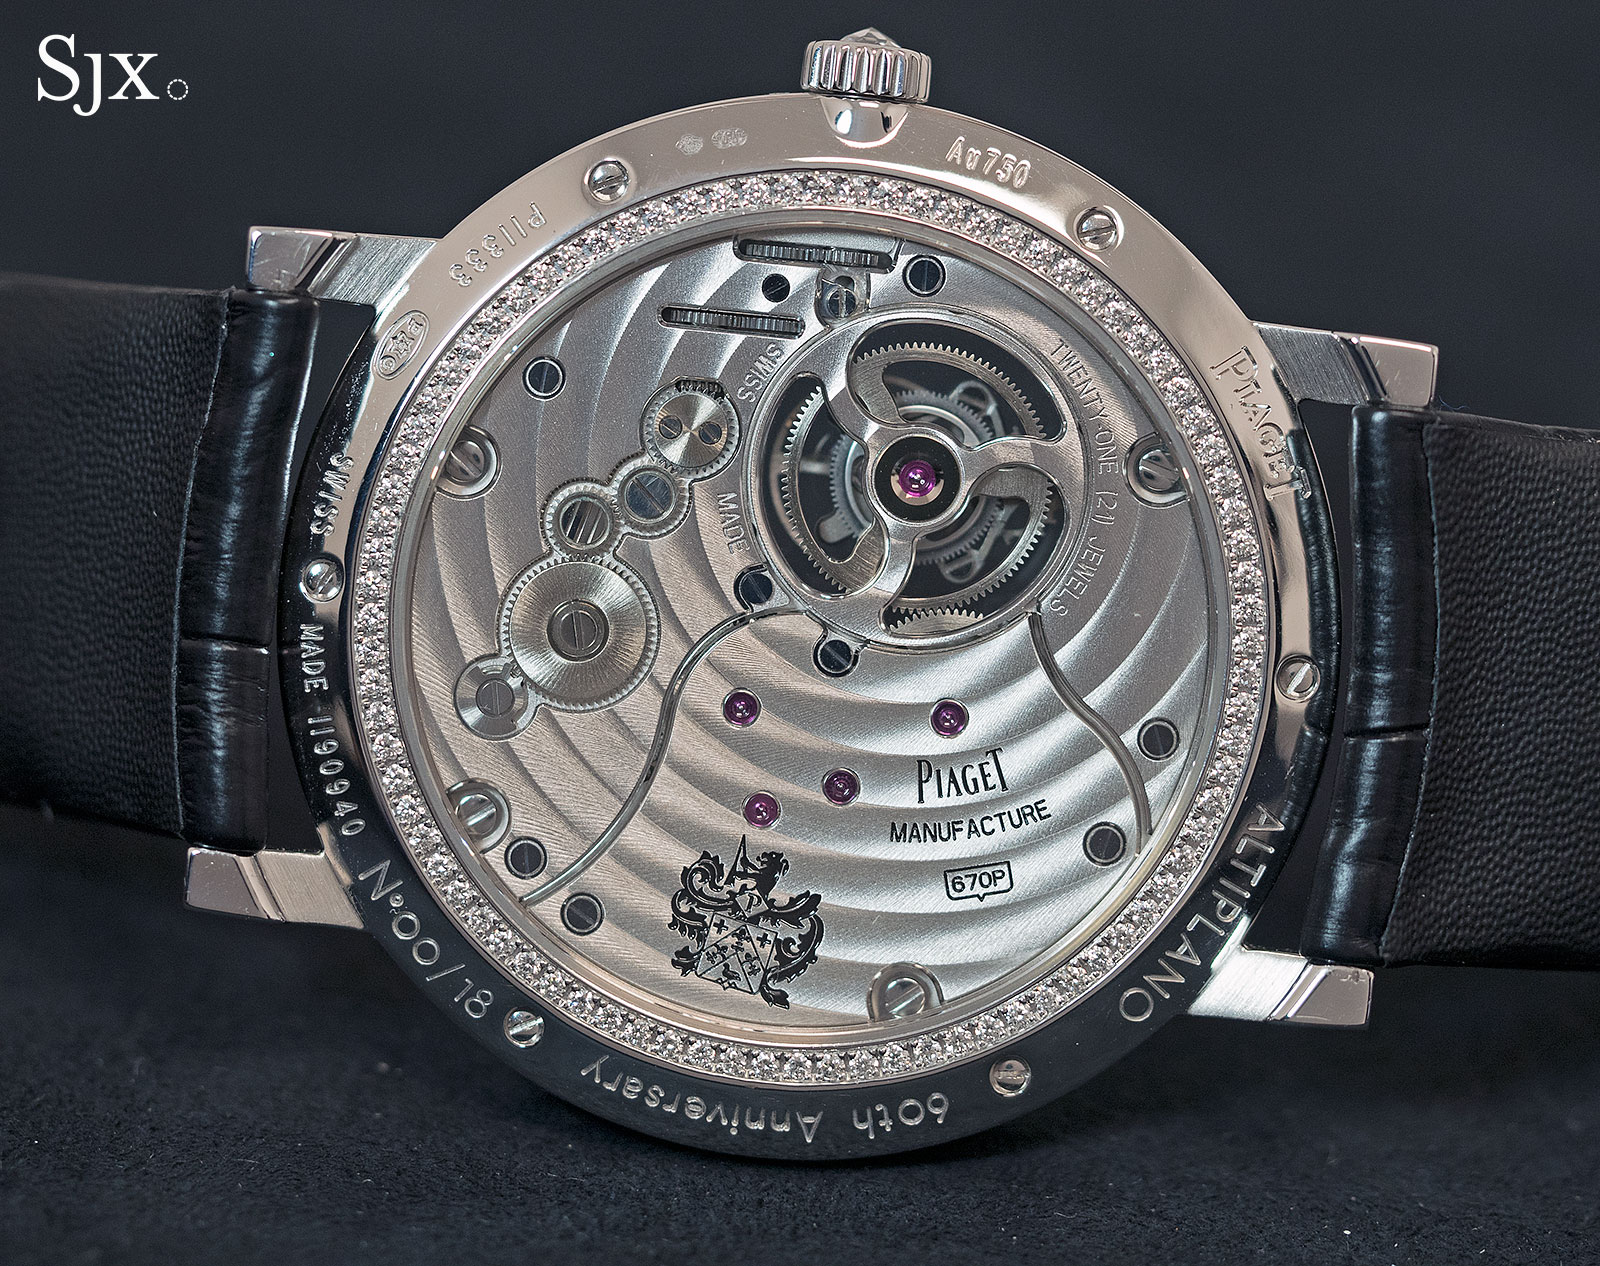 Piaget Altiplano 60th Anniversary Tourbillon High Jewellery 4